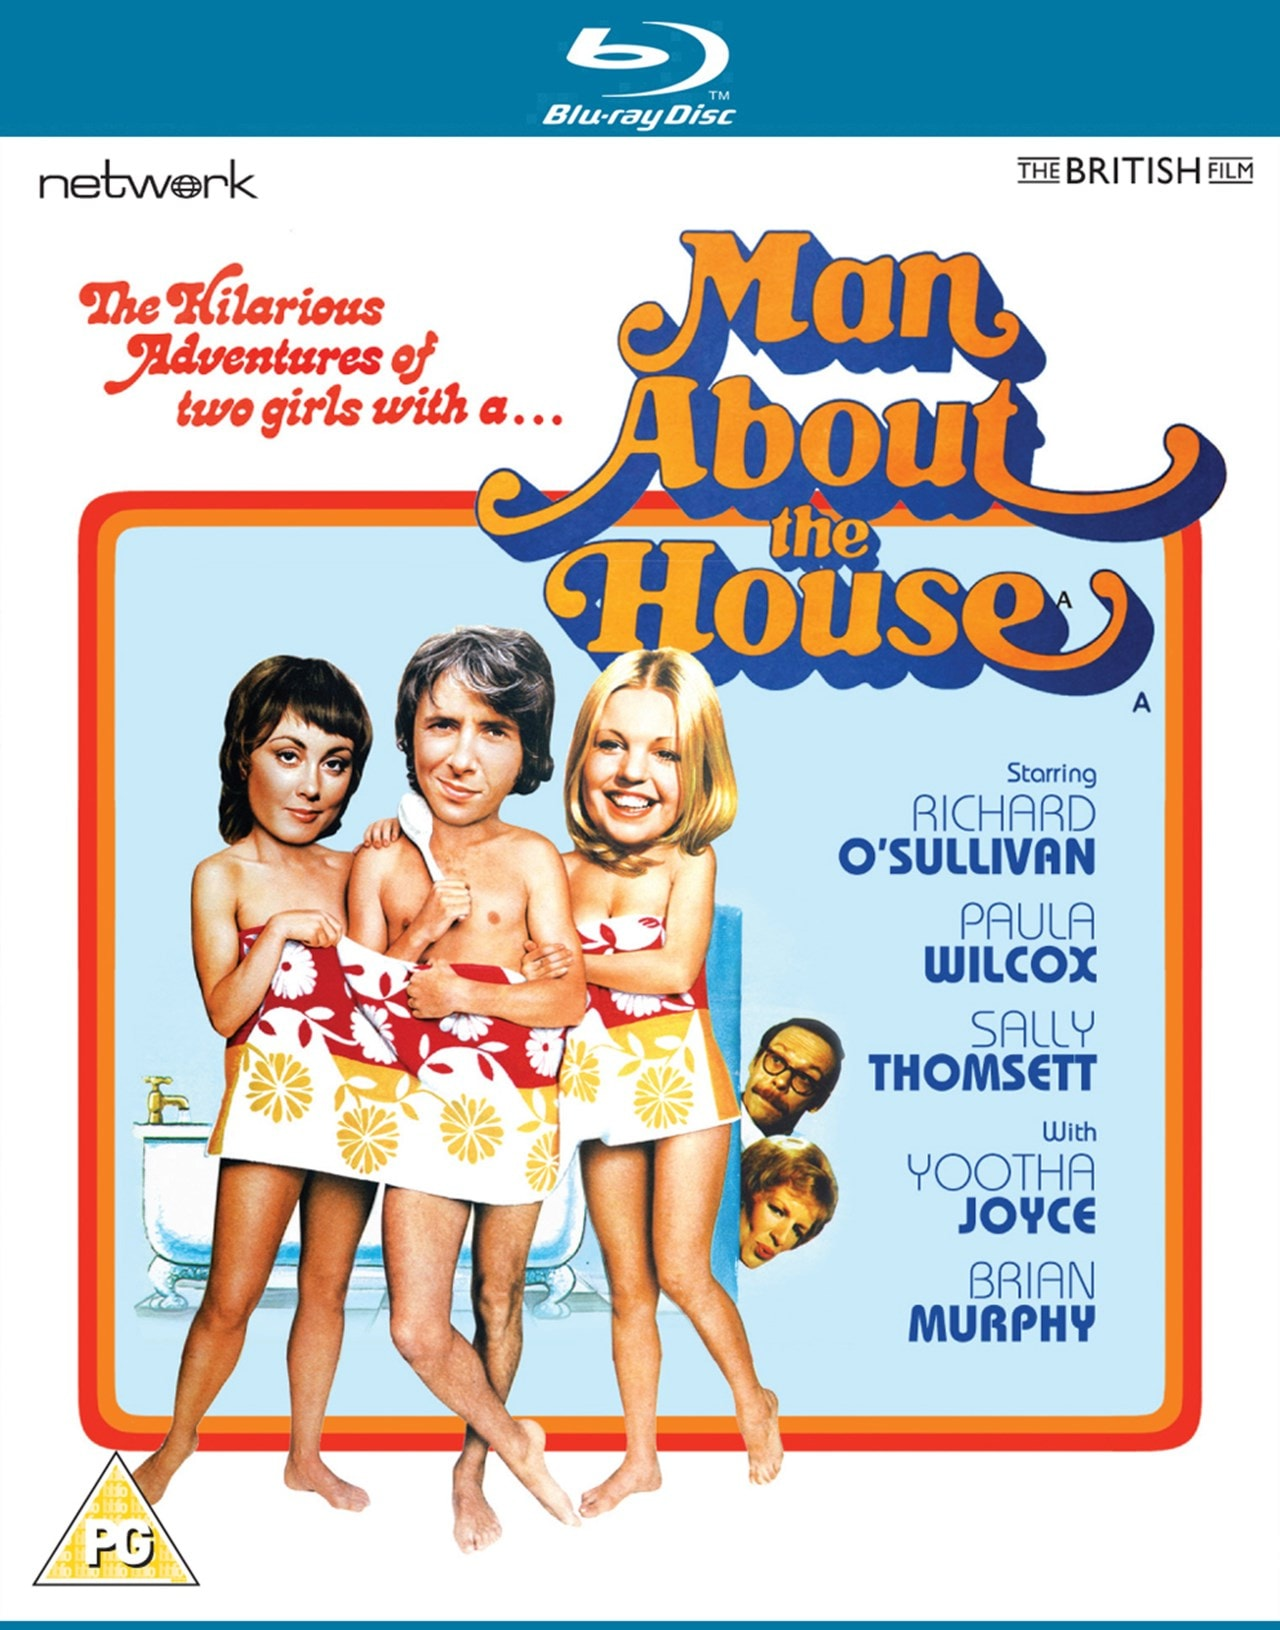 Man About the House - 1